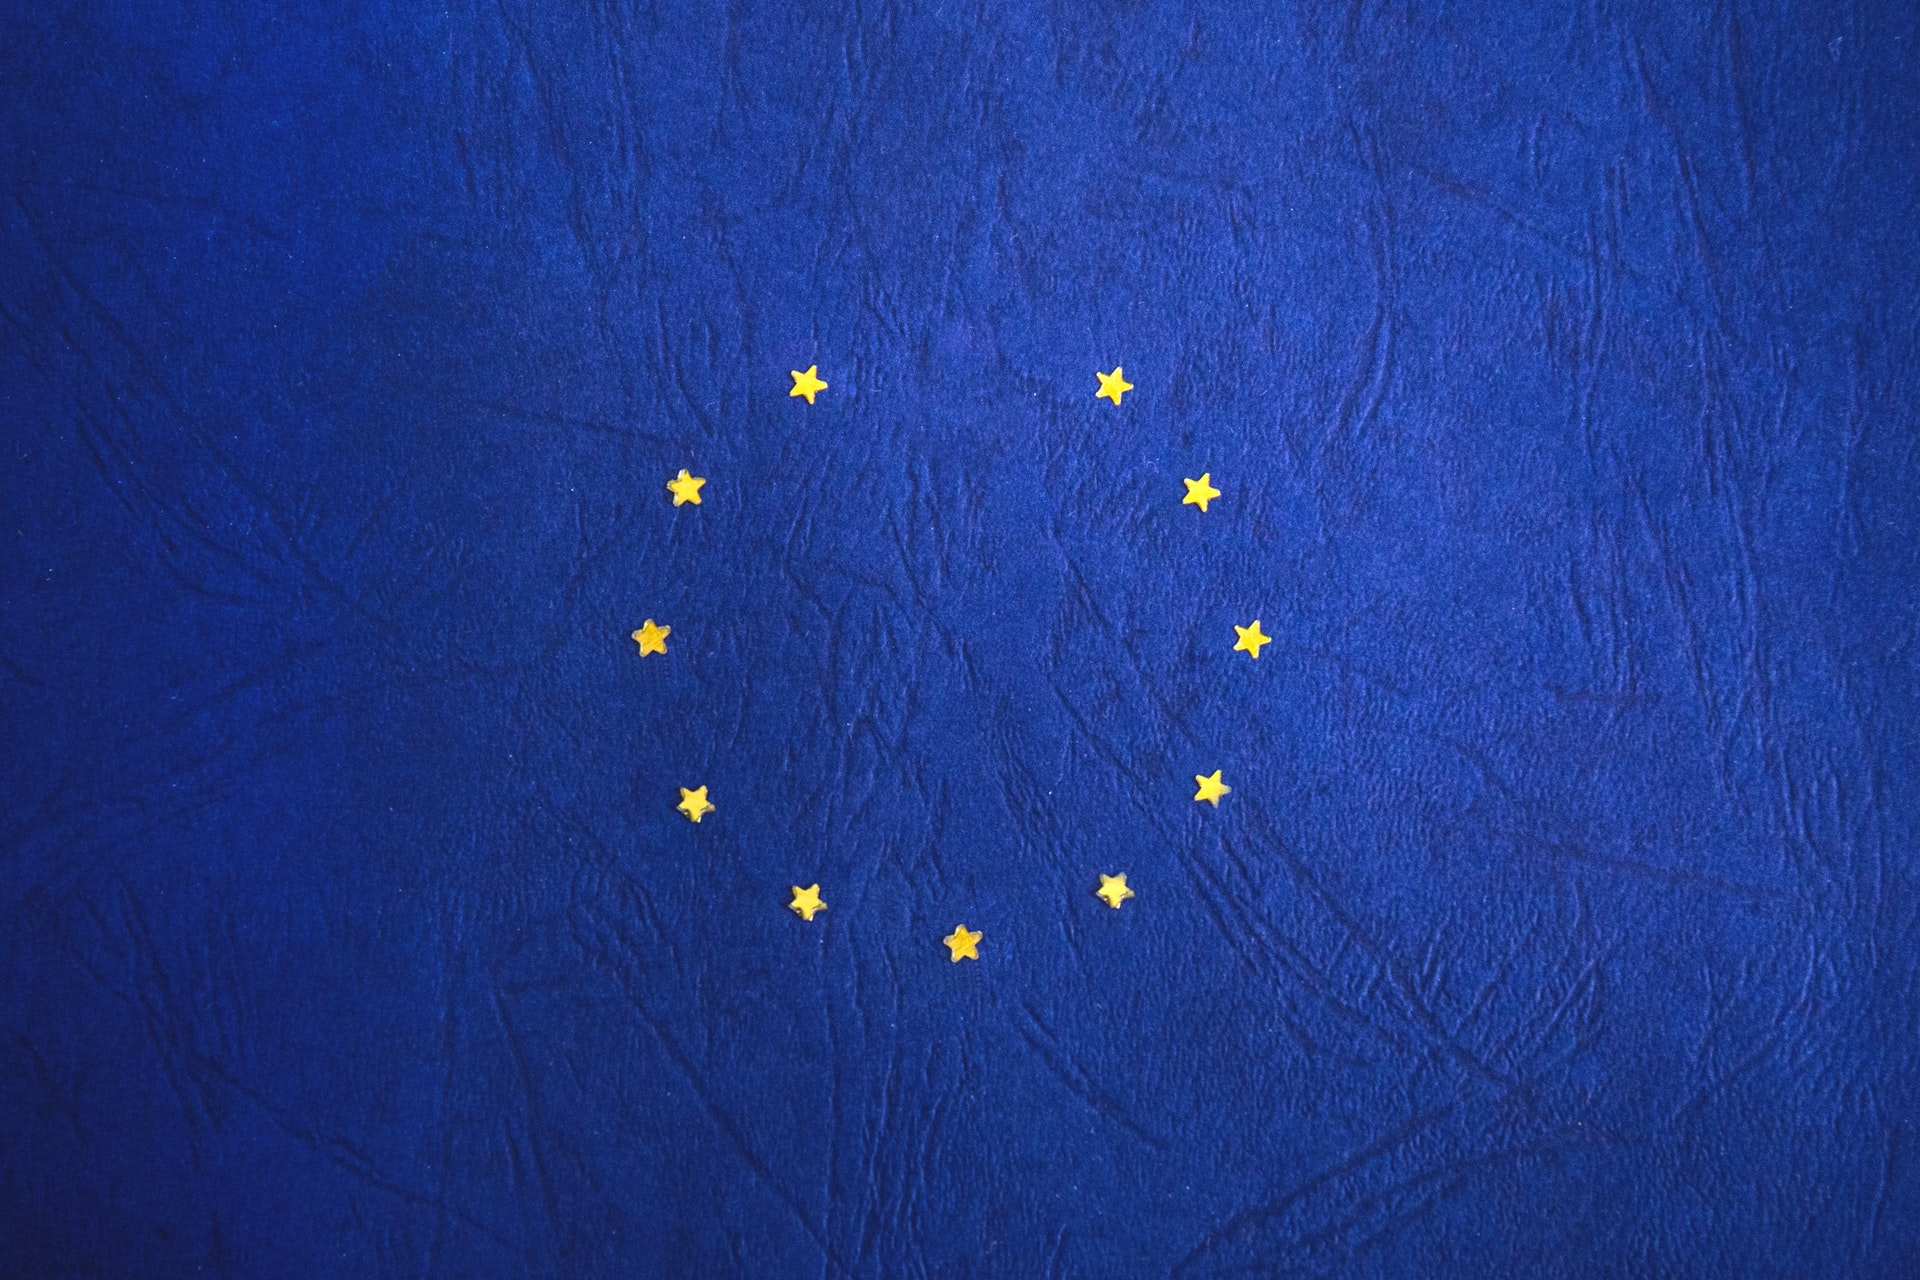 The EU flag with one star missing